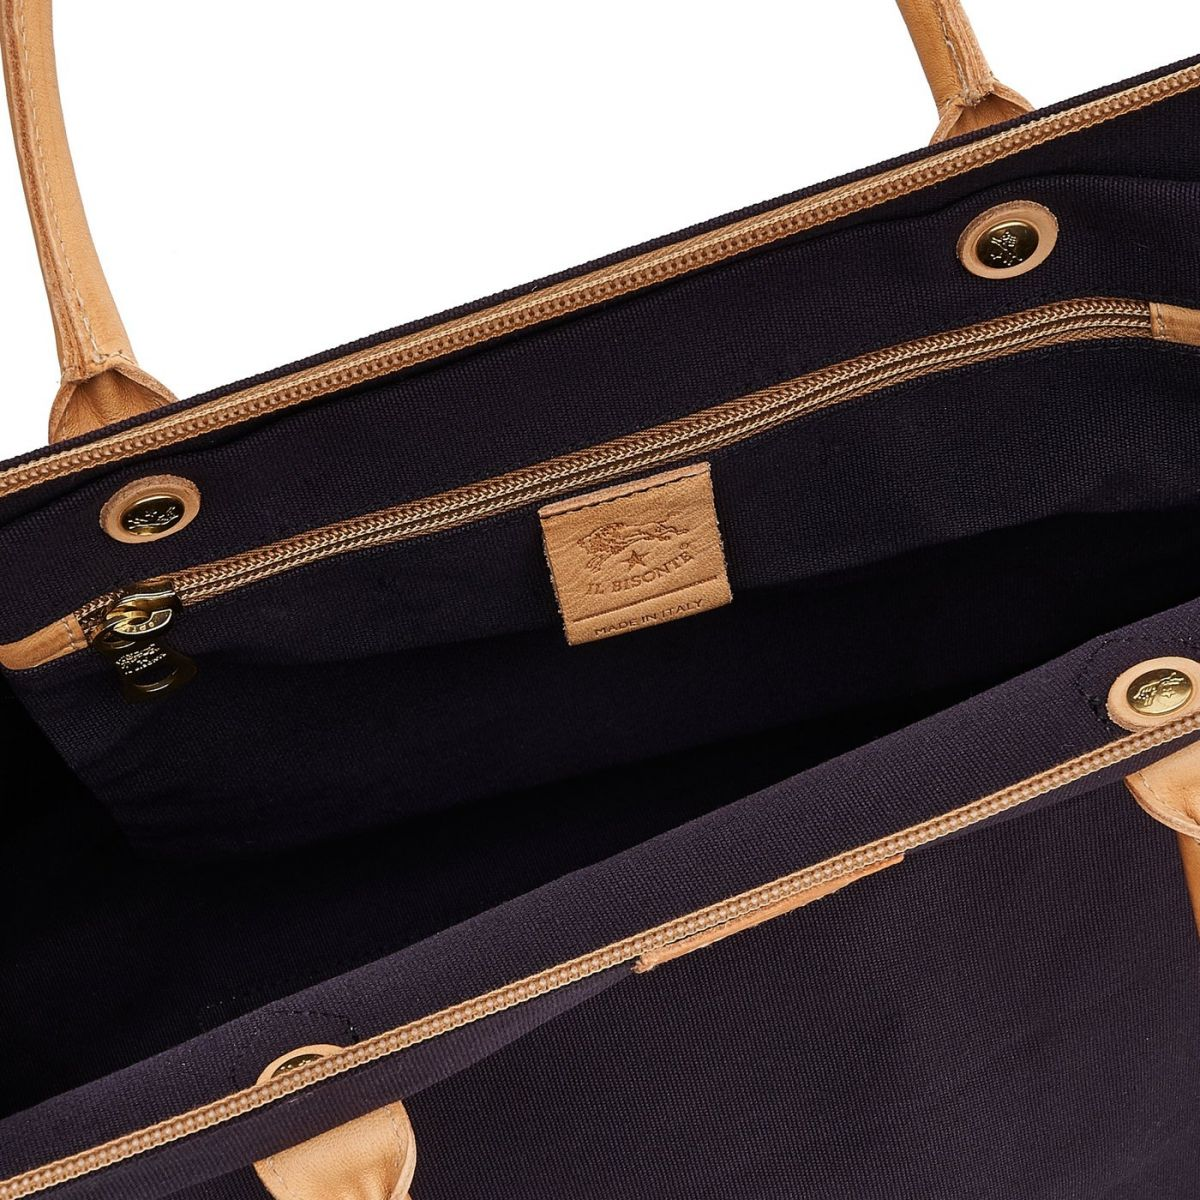 Vagabonda  - Travel Bag  in Cotton Canvas BDU028 color Blue | Details